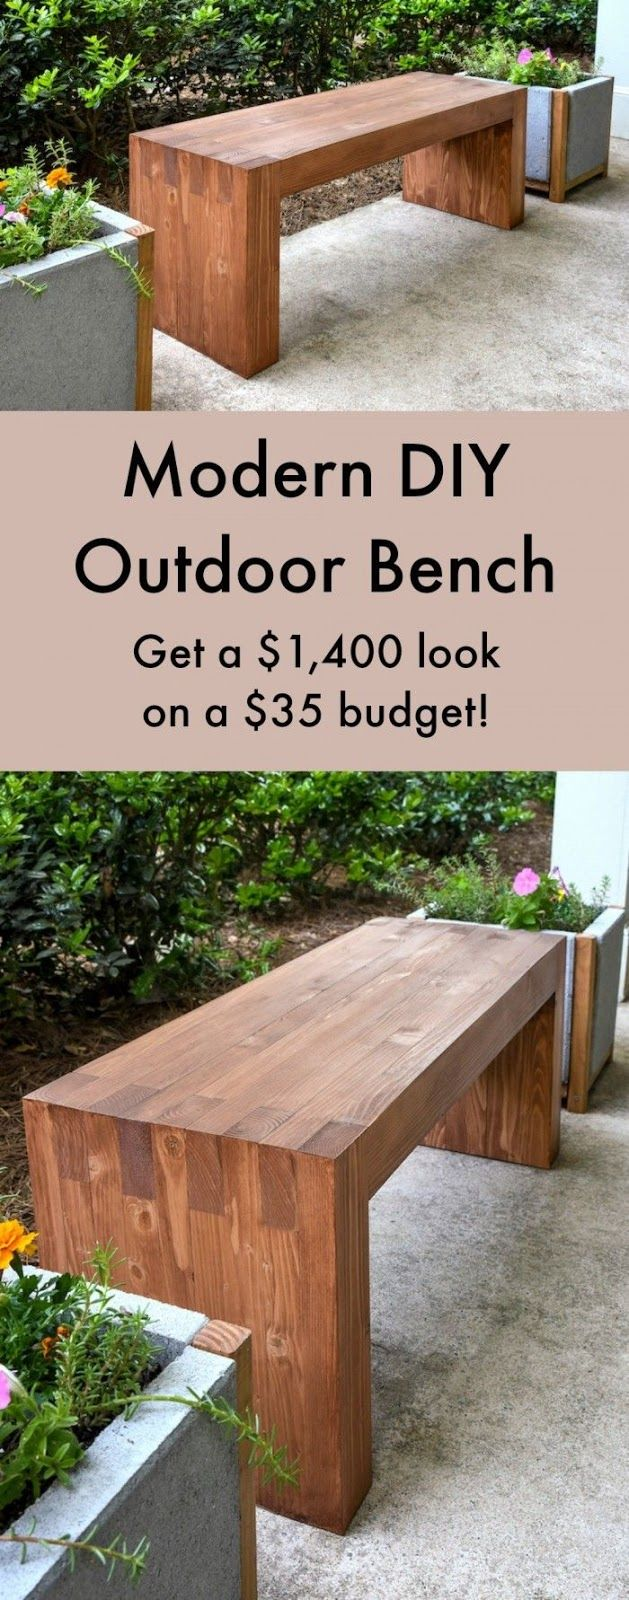 Best 20+ Diy Outdoor Table Ideas On Pinterest | Outdoor Wood Table, Patio  Table And Outdoor Table Decor